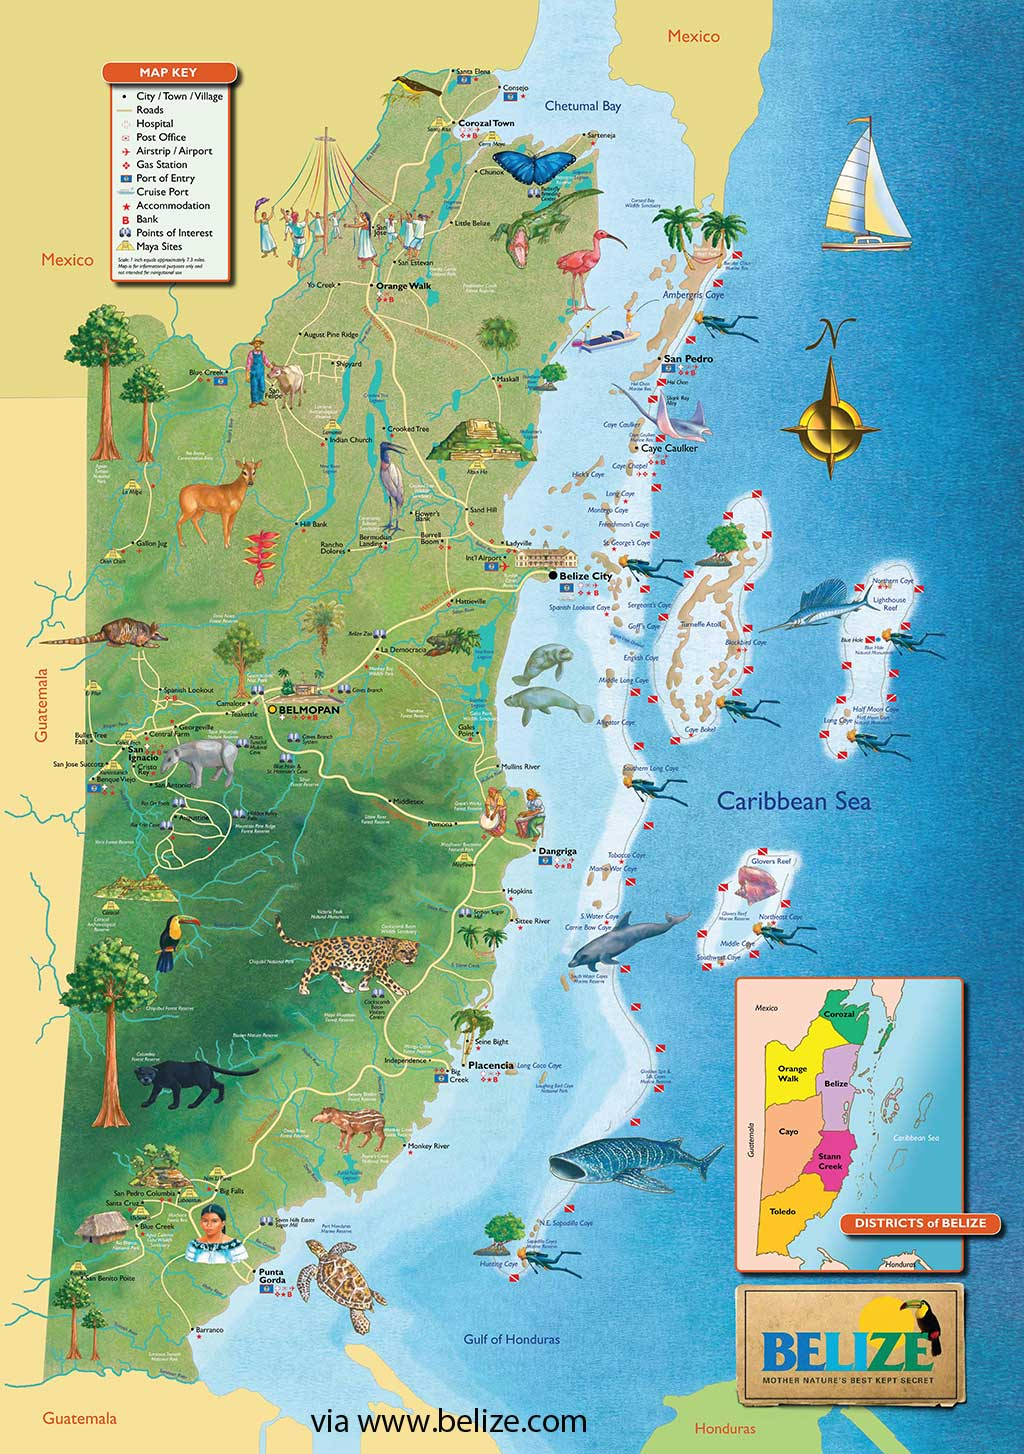 Belize country map with activities and points of interest – click on